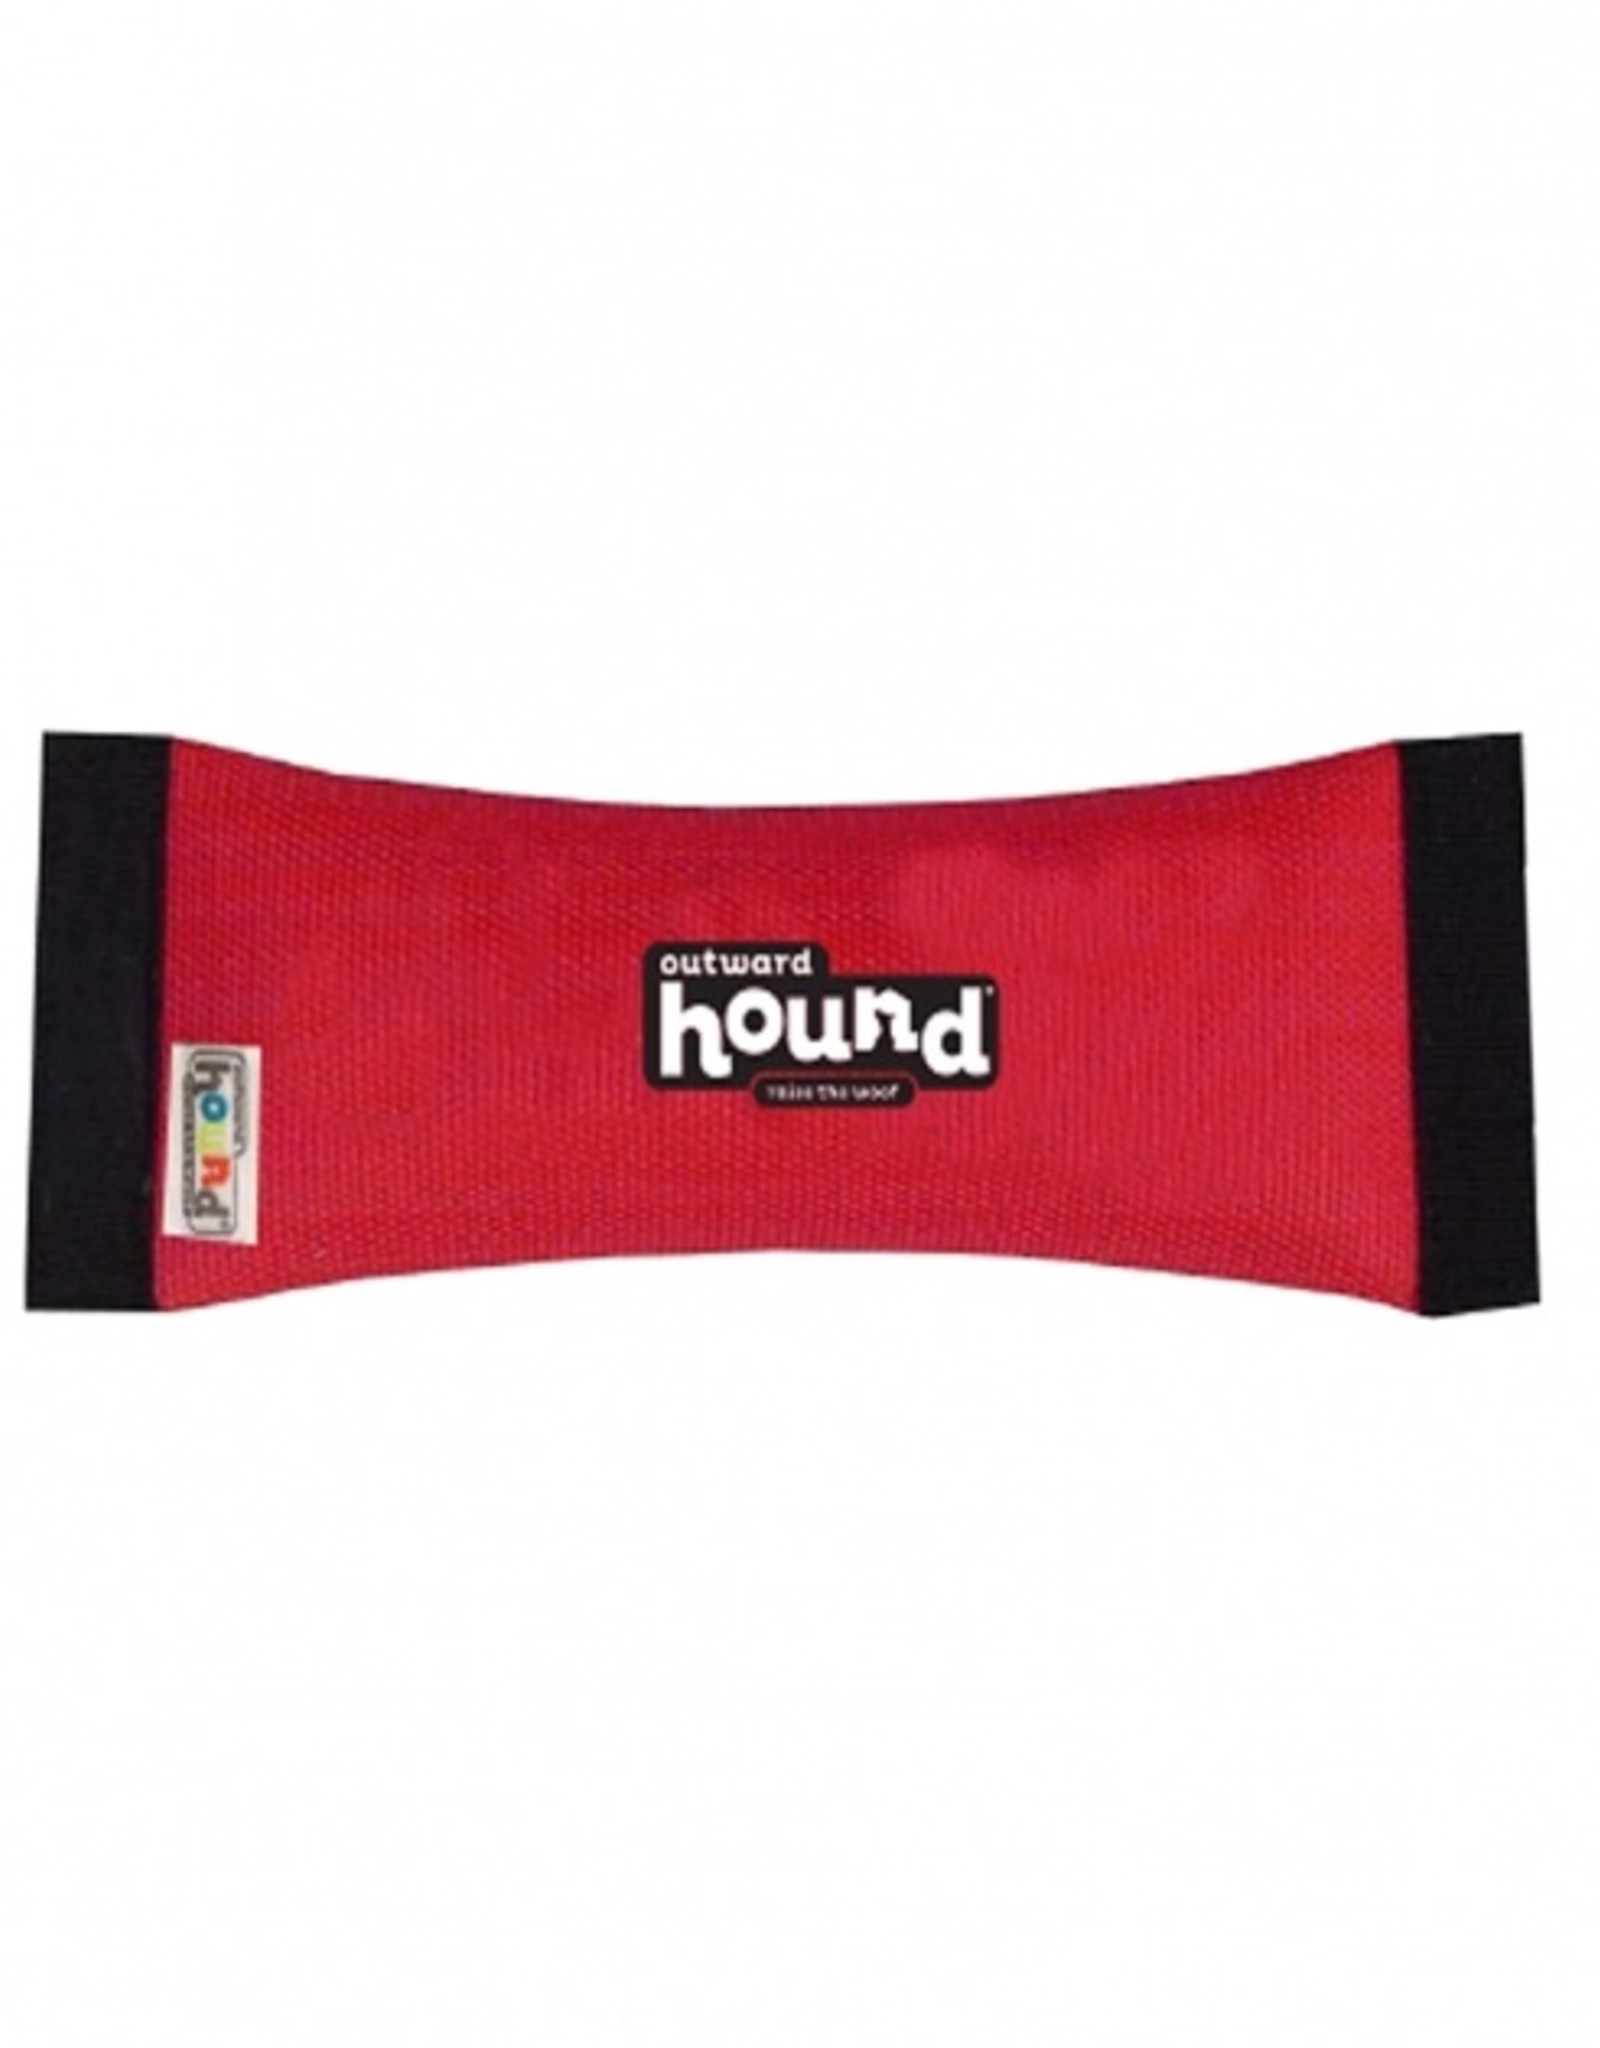 OUTWARD HOUND DOG TOY FIRE HOSE SQK N FETCH LG